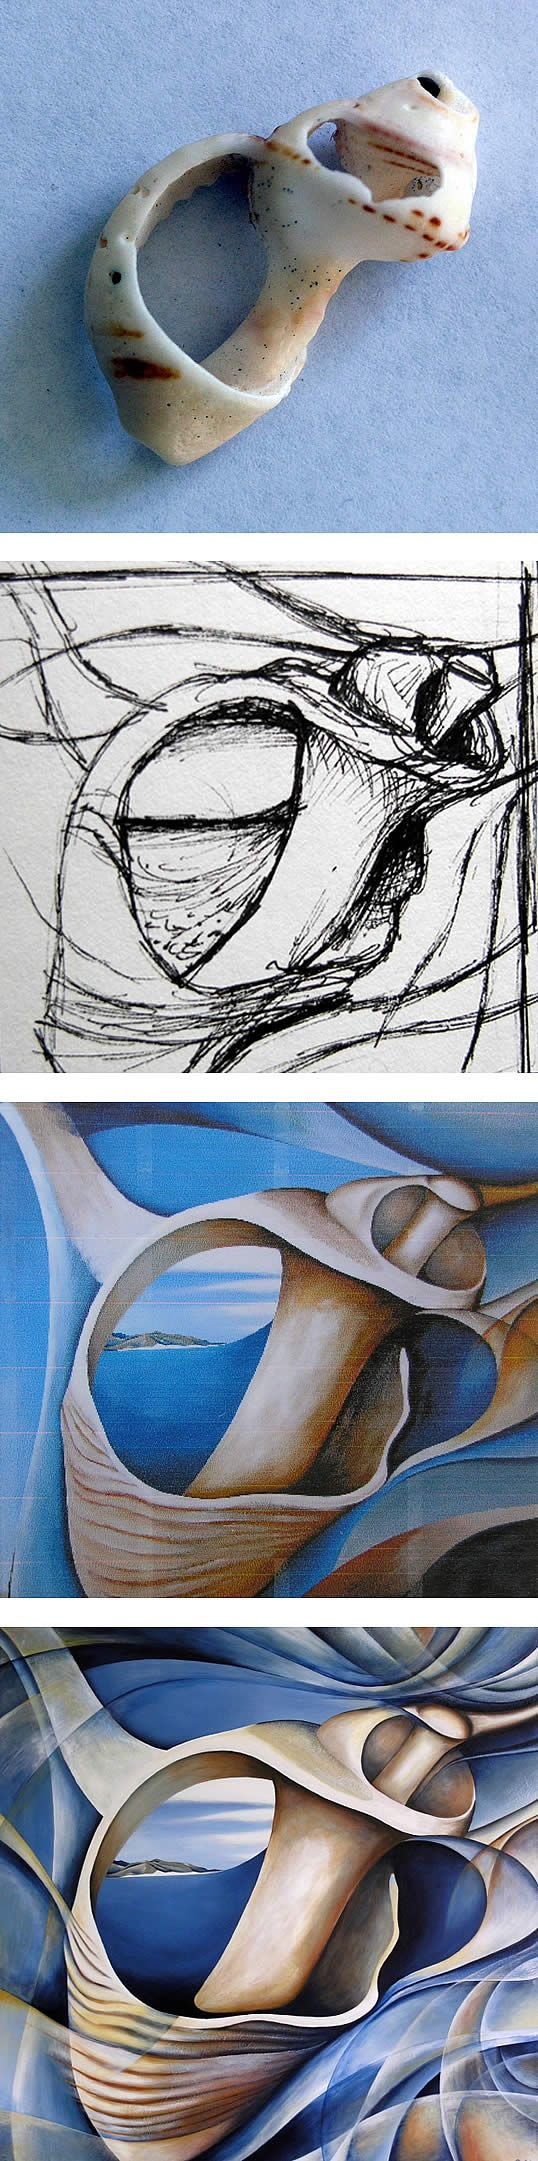 object inspired surrealism: Step-by-step shell painting by Amiria Robinson, www.studentartguide.com